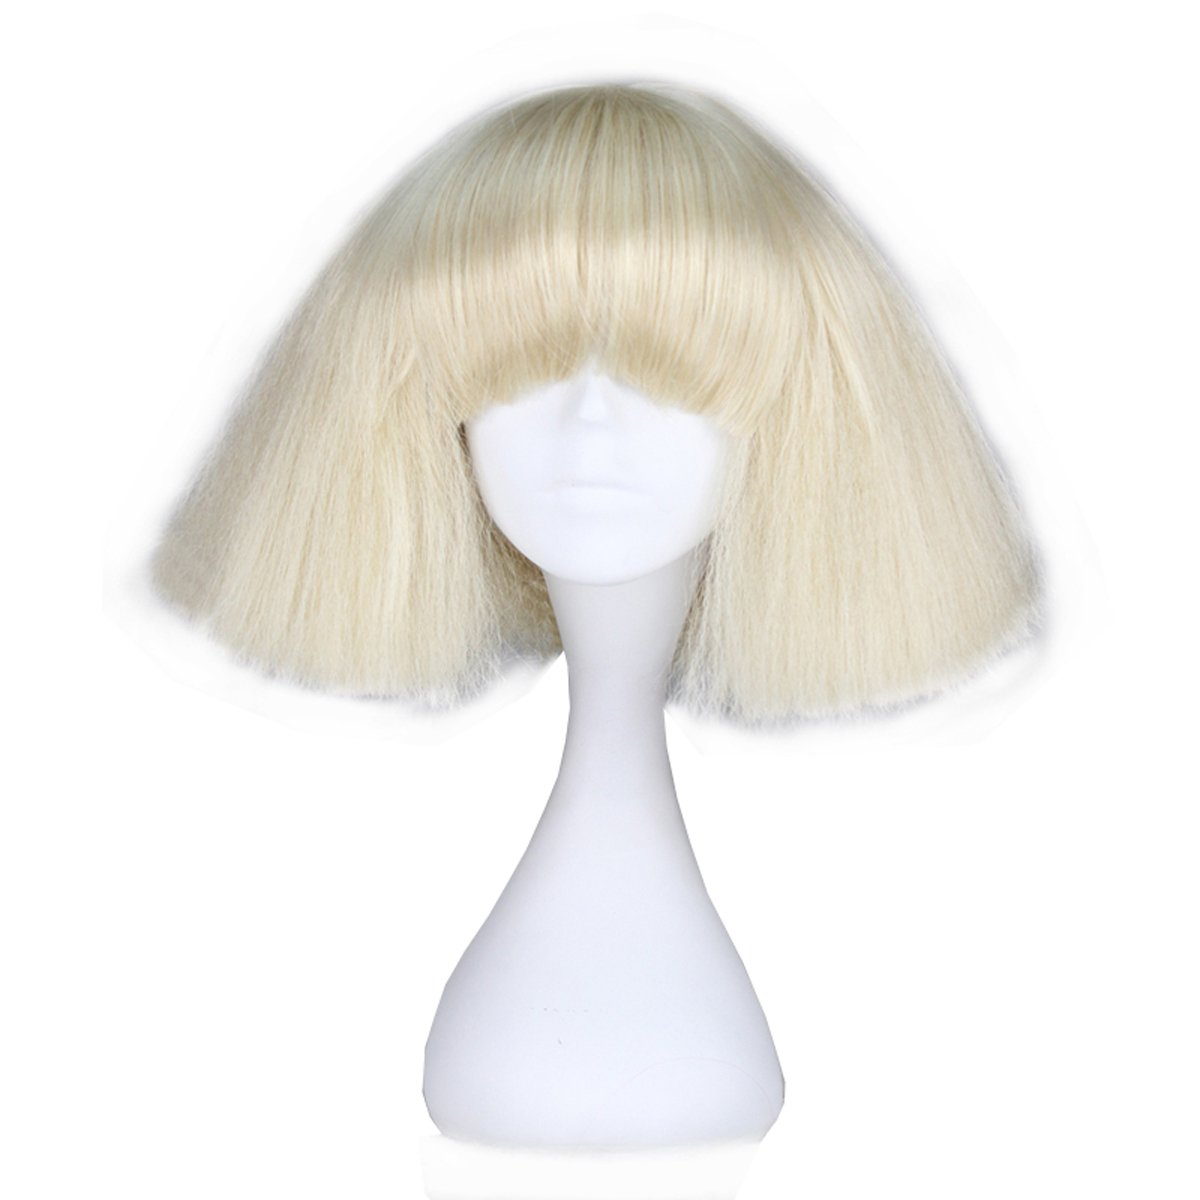 Miss U Hair Short Kinky Straight Wig Blonde Fashion Party C090